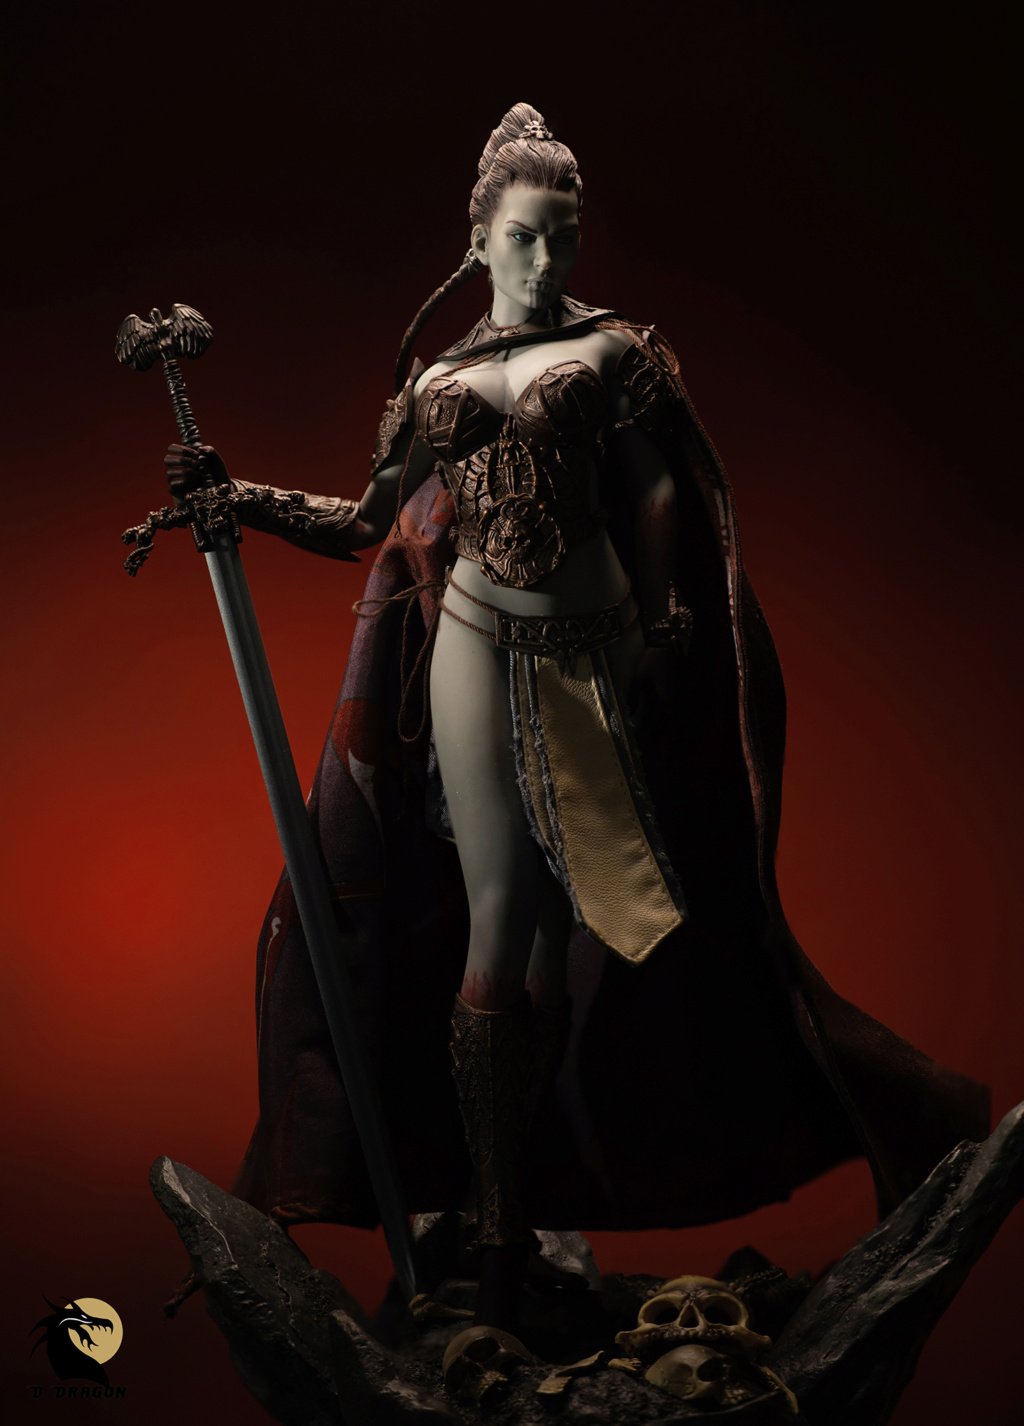 tbleague - NEW PRODUCT: TBLeague & Sideshow: 1/6 Court of the Dead - Valkyrie Cole / Kier movable doll (PL2019-141) Kier_111